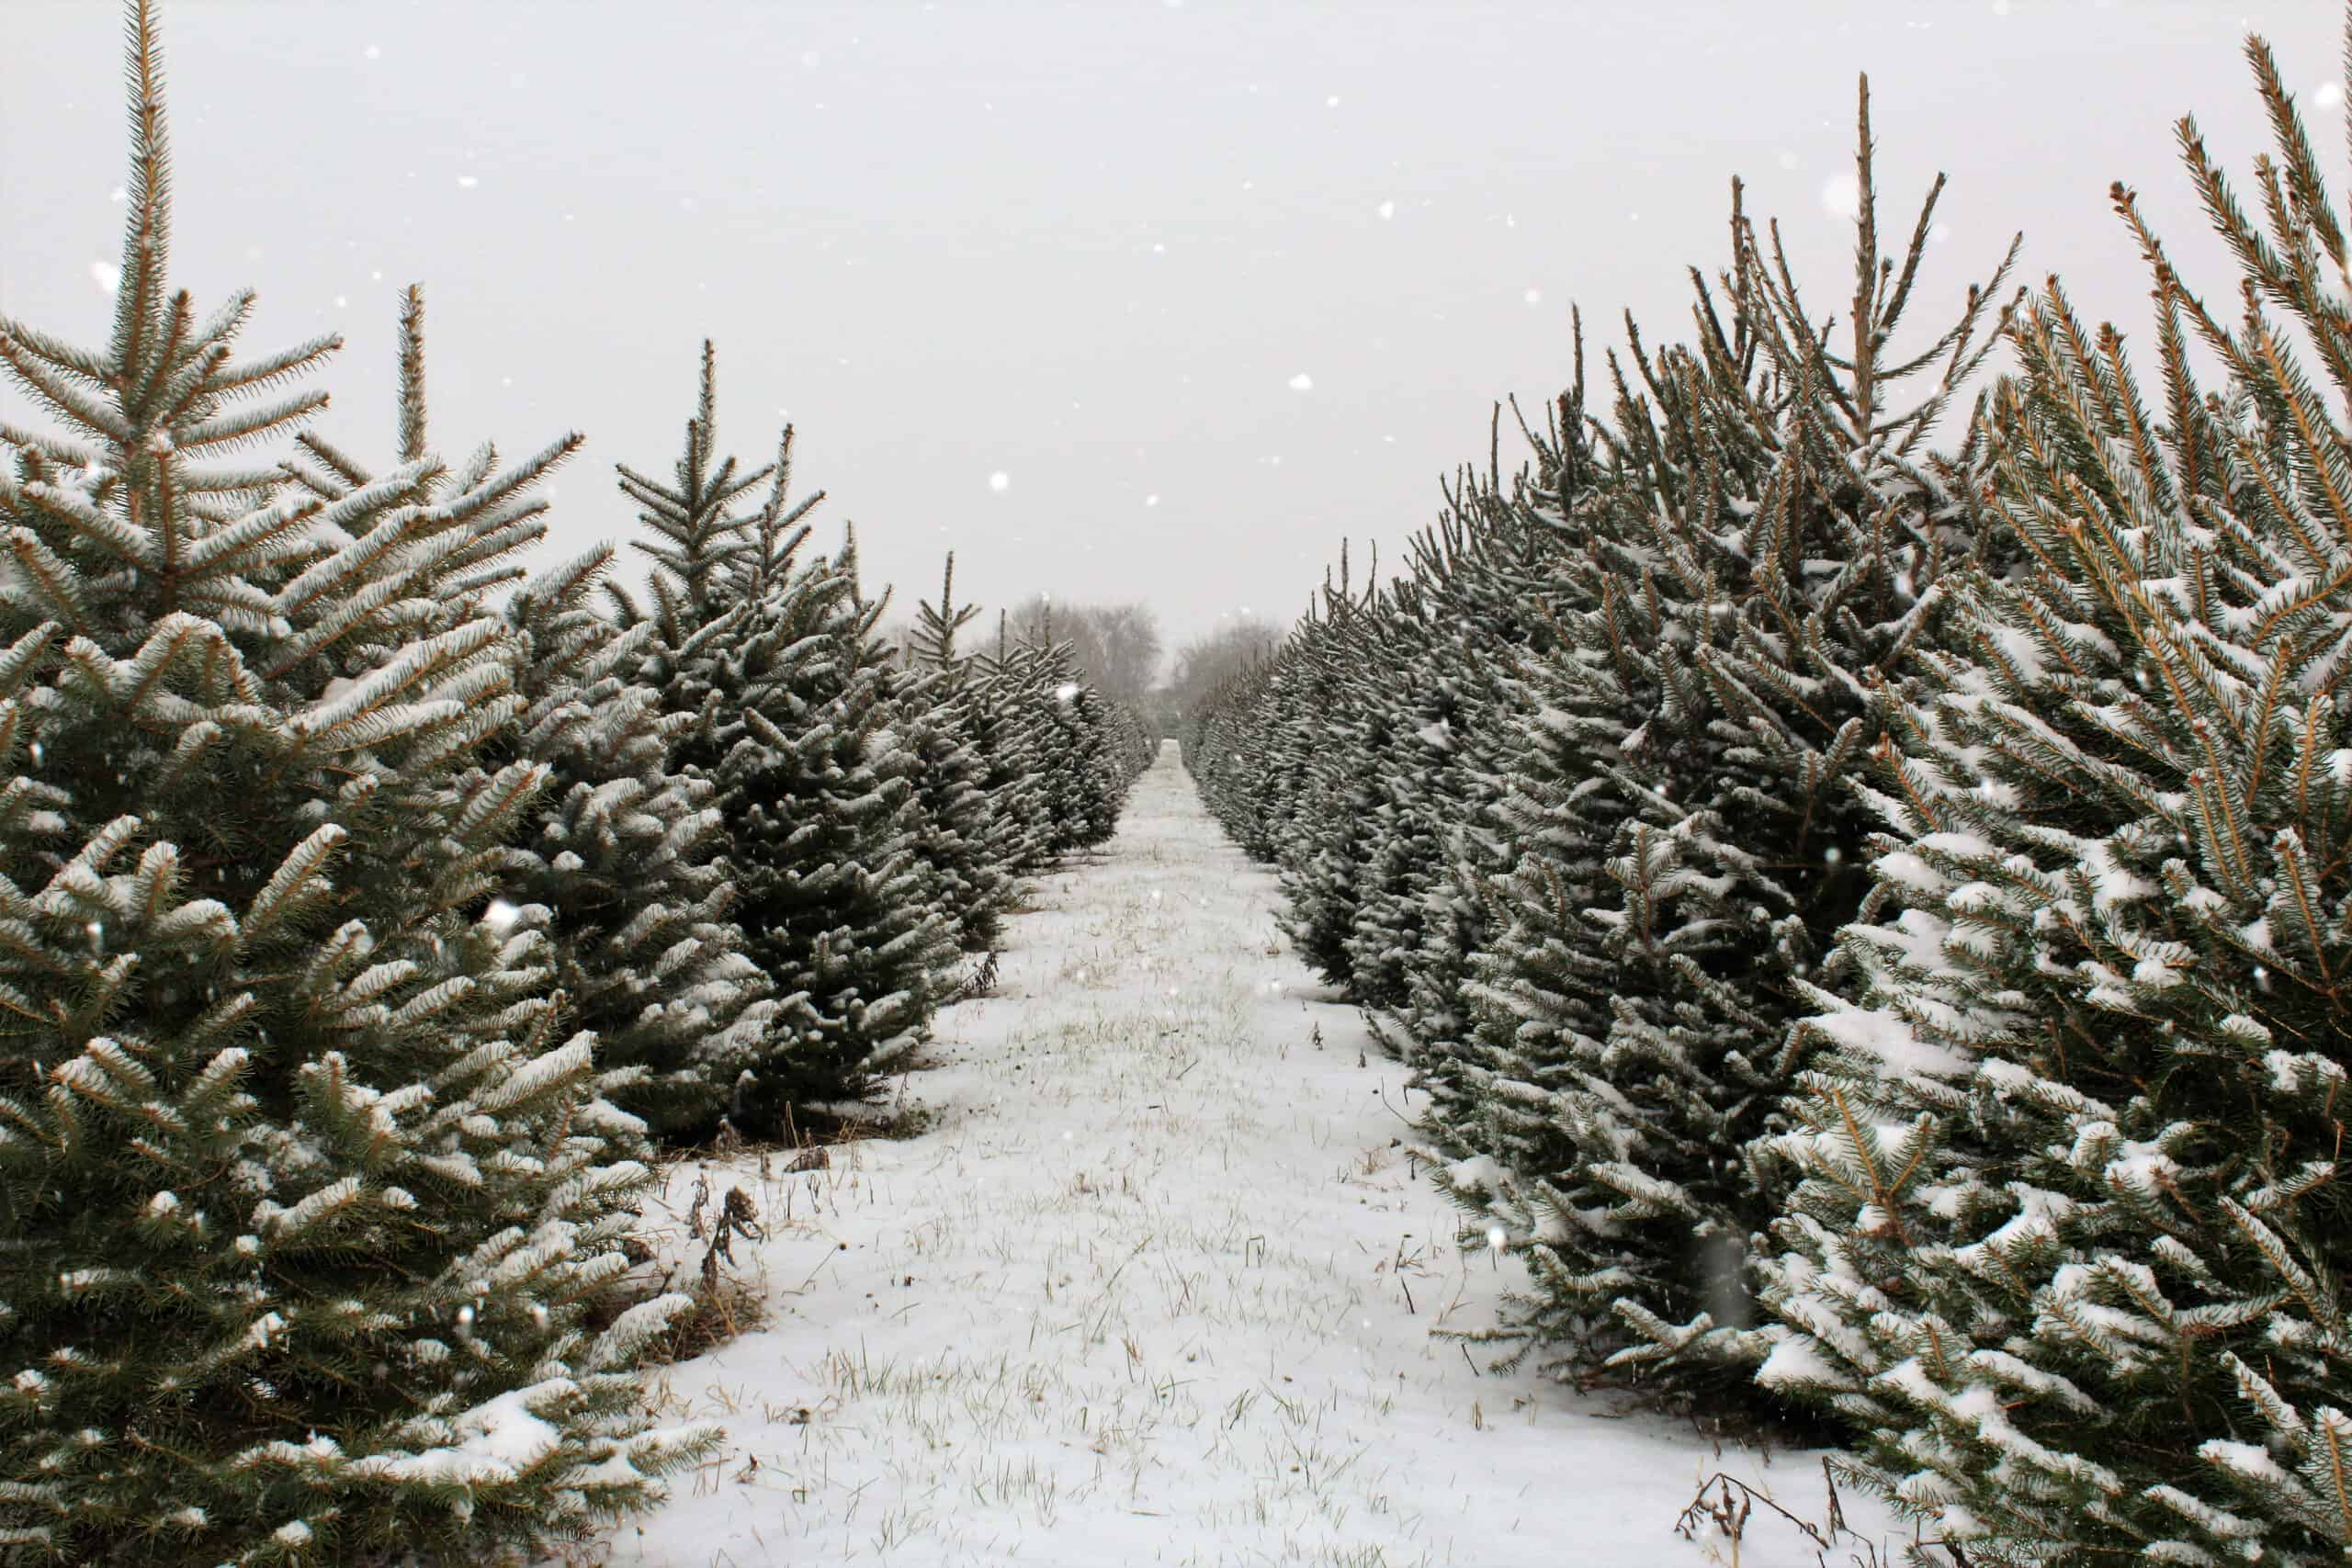 christmas tree farms in maine - image of snowy pine trees in a row